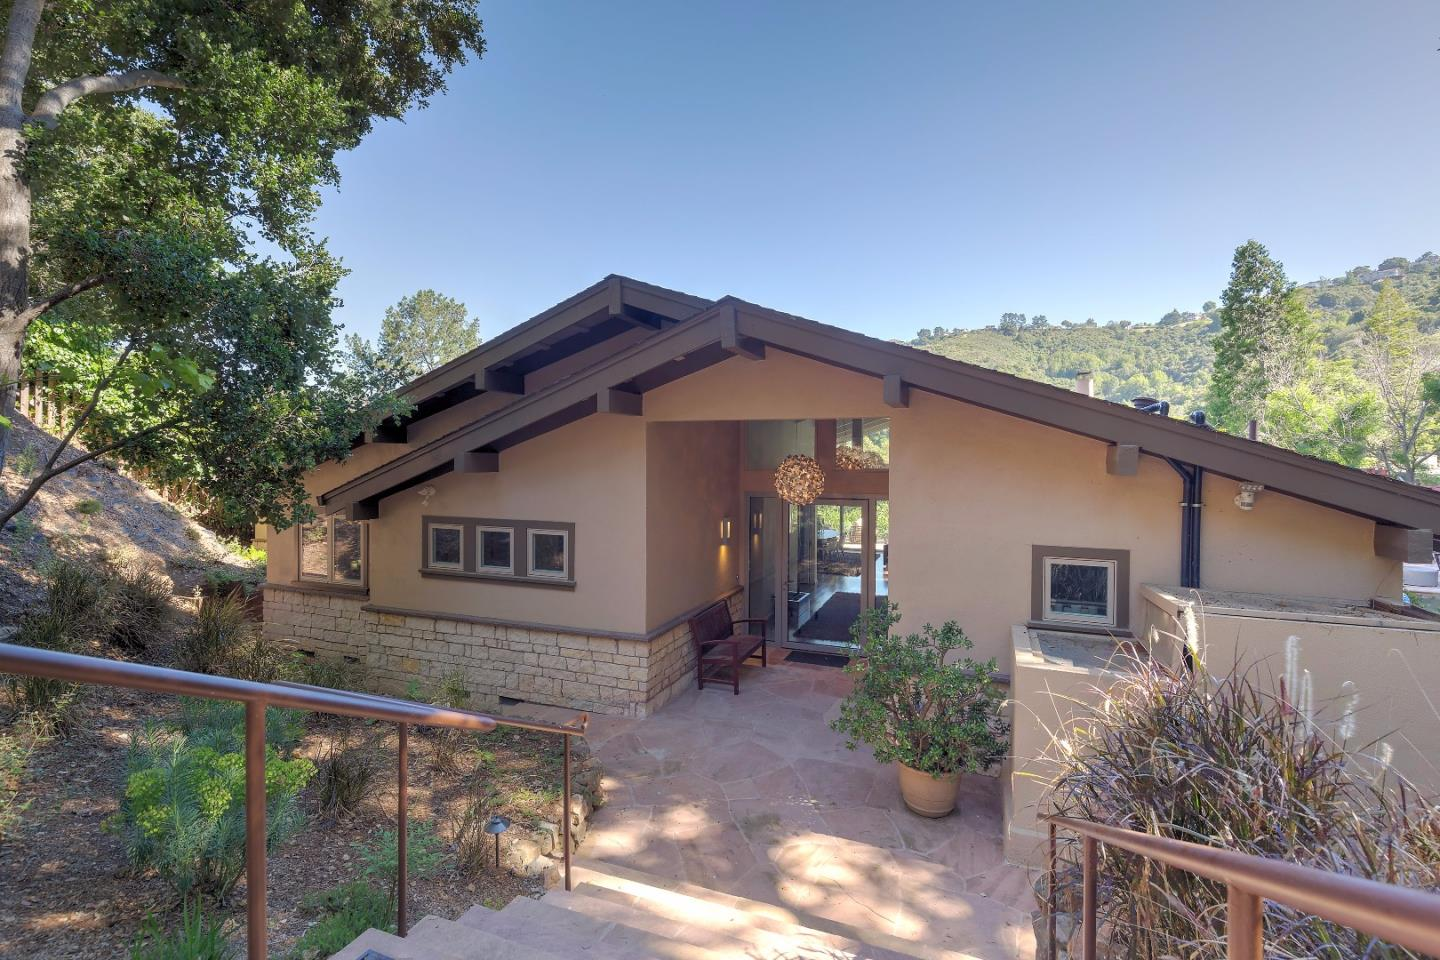 Single Family Home for Sale at 135 Lynton Avenue San Carlos, California 94070 United States